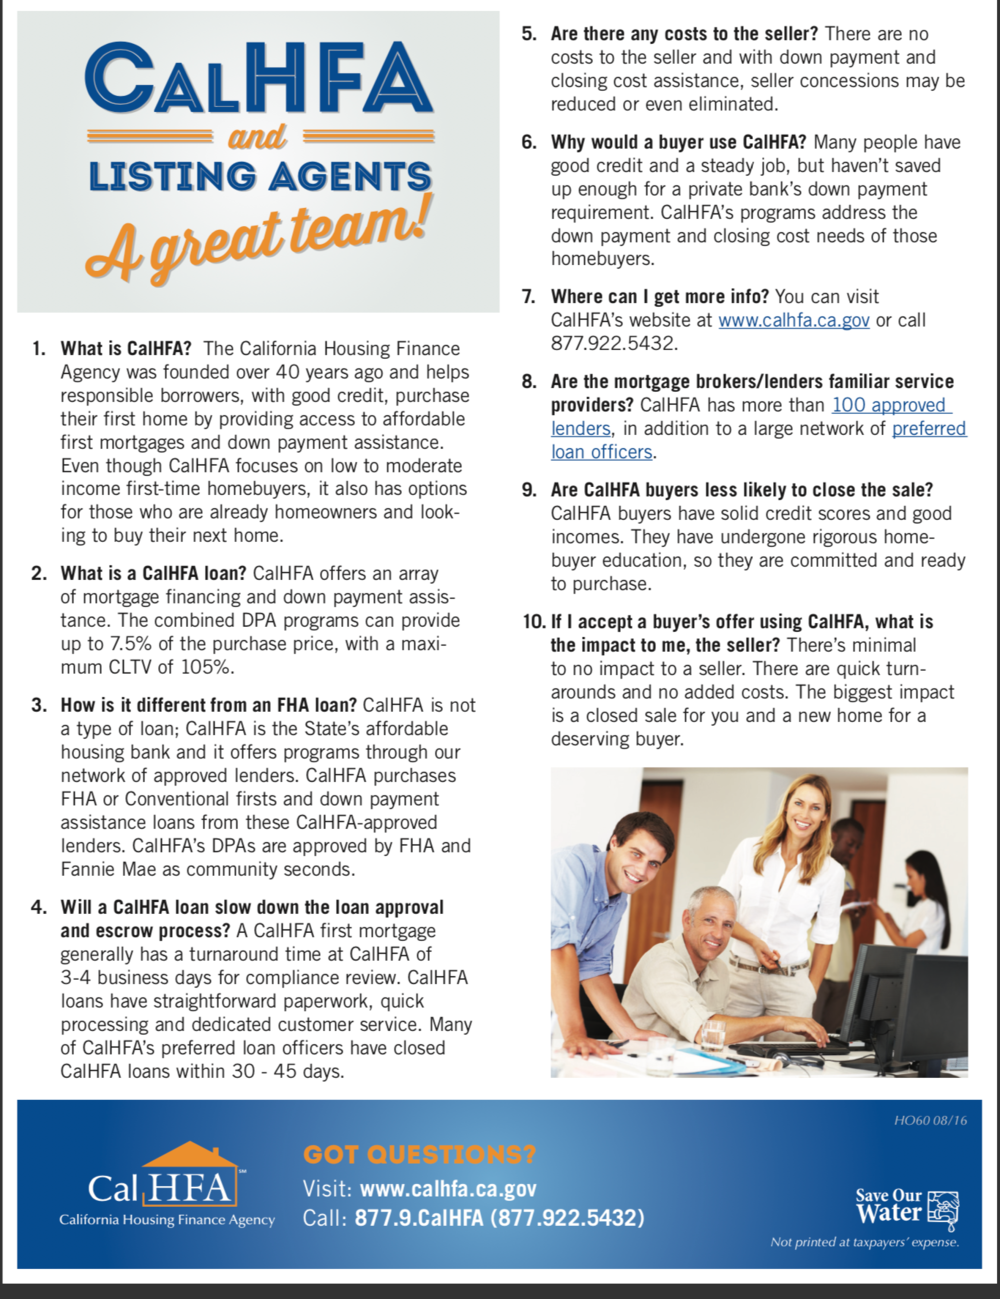 CALHFA and Listing Agents. Your seller benefits with a solid buyer and loan.